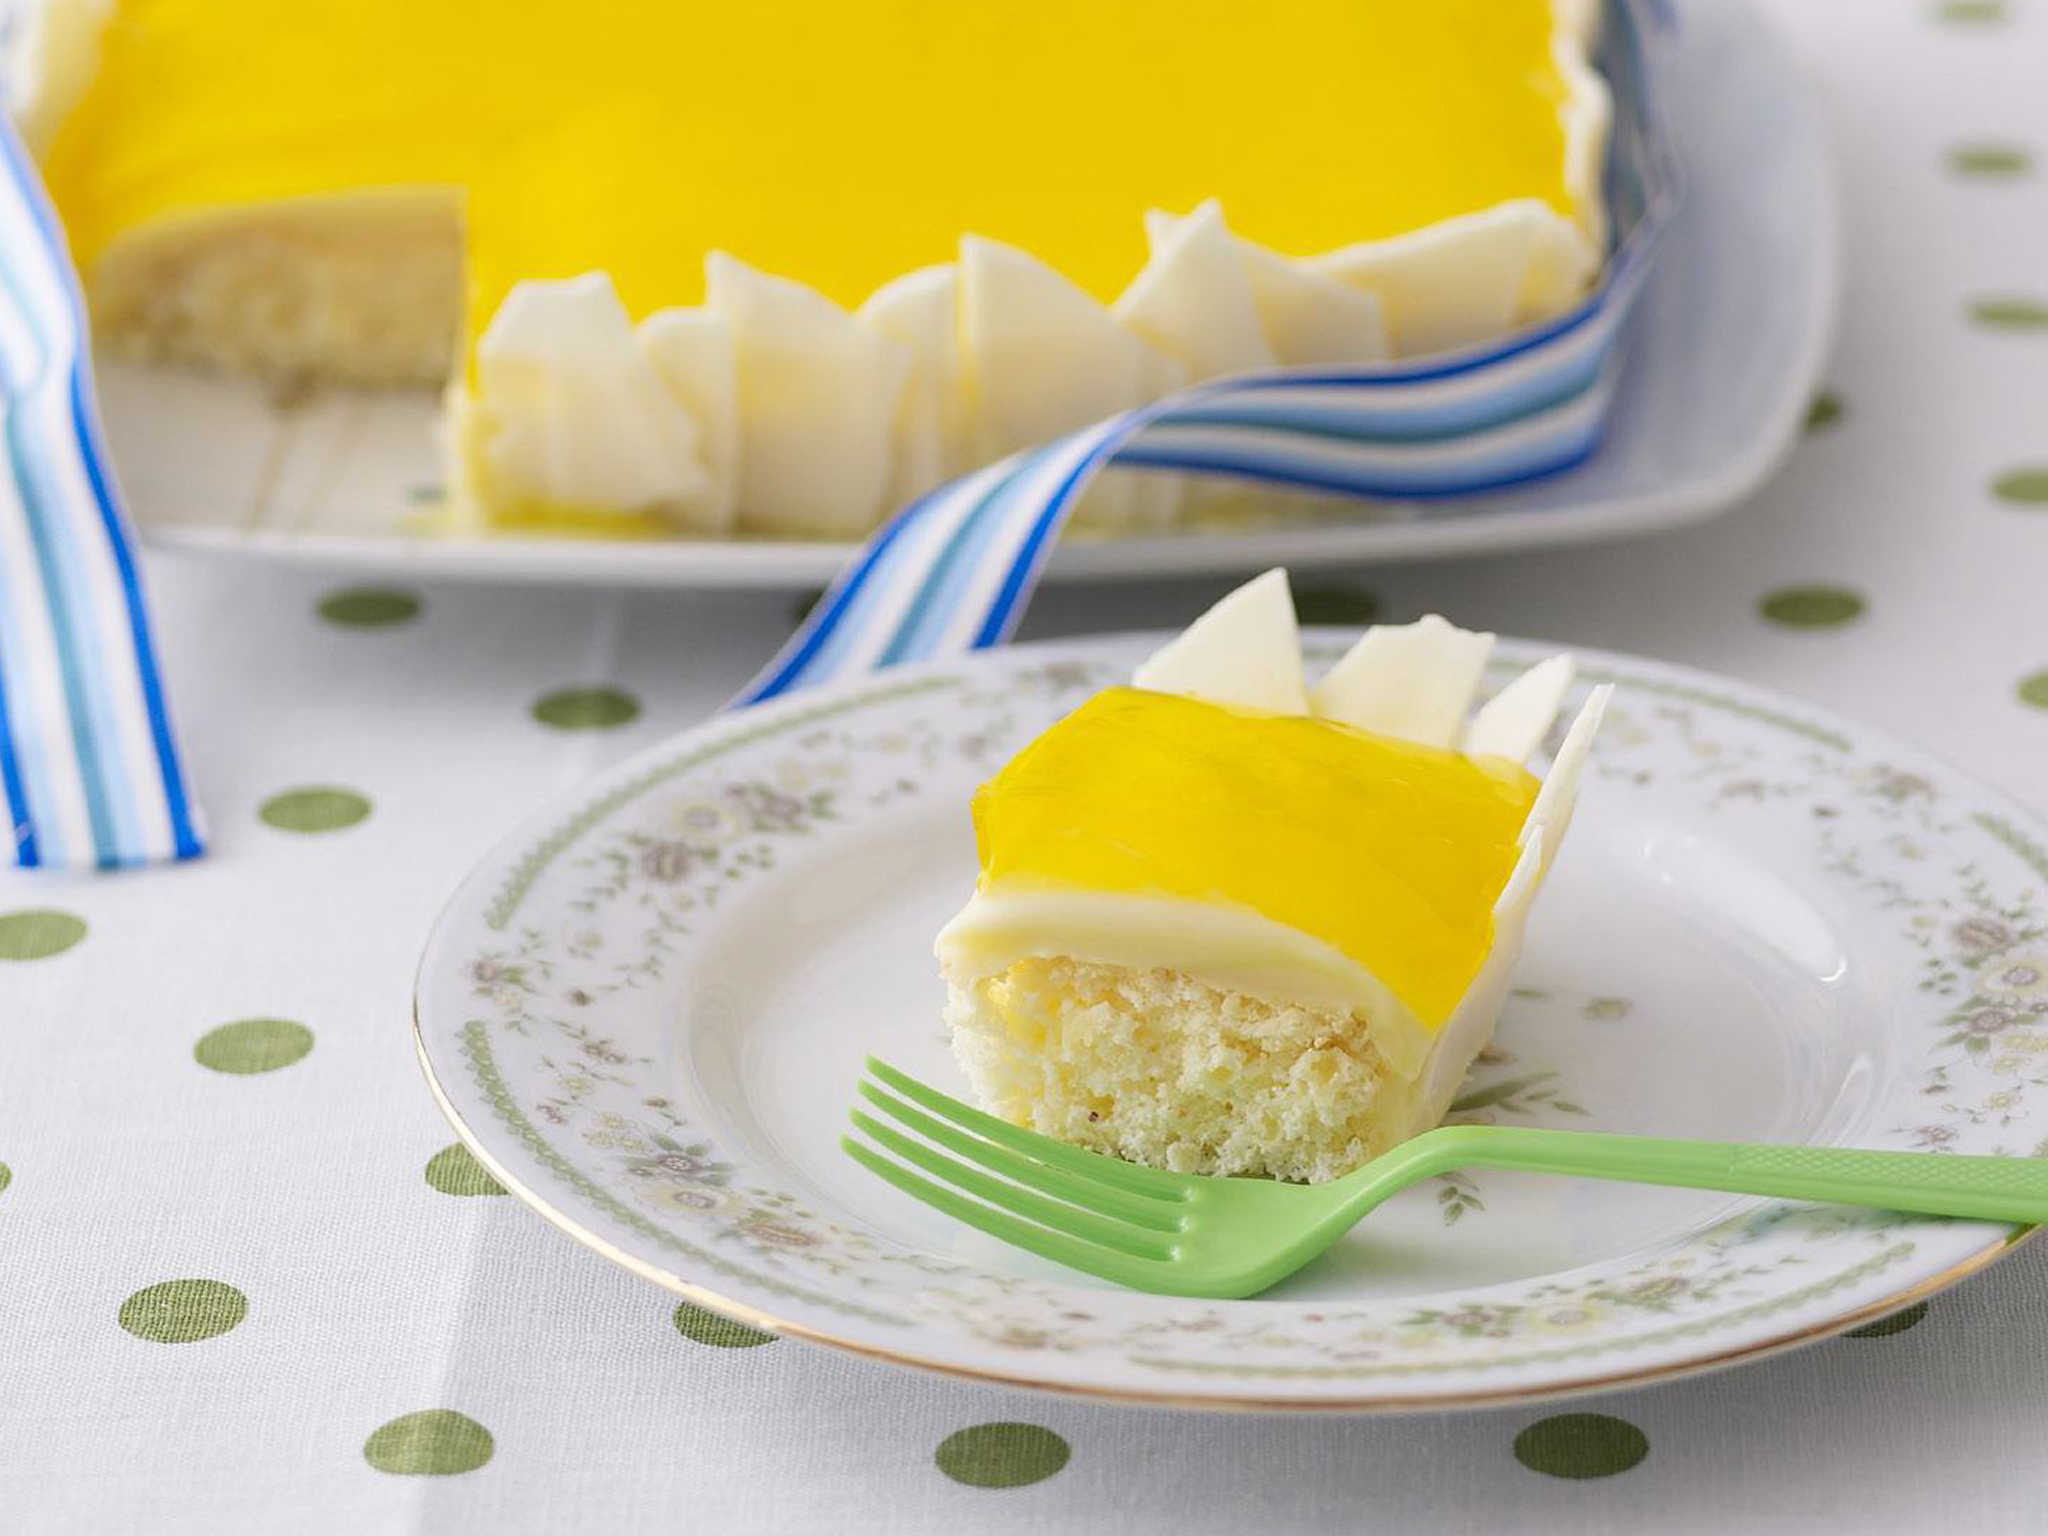 Fruit And Jelly Cake Recipe: Passionfruit And White Chocolate Jelly Cake